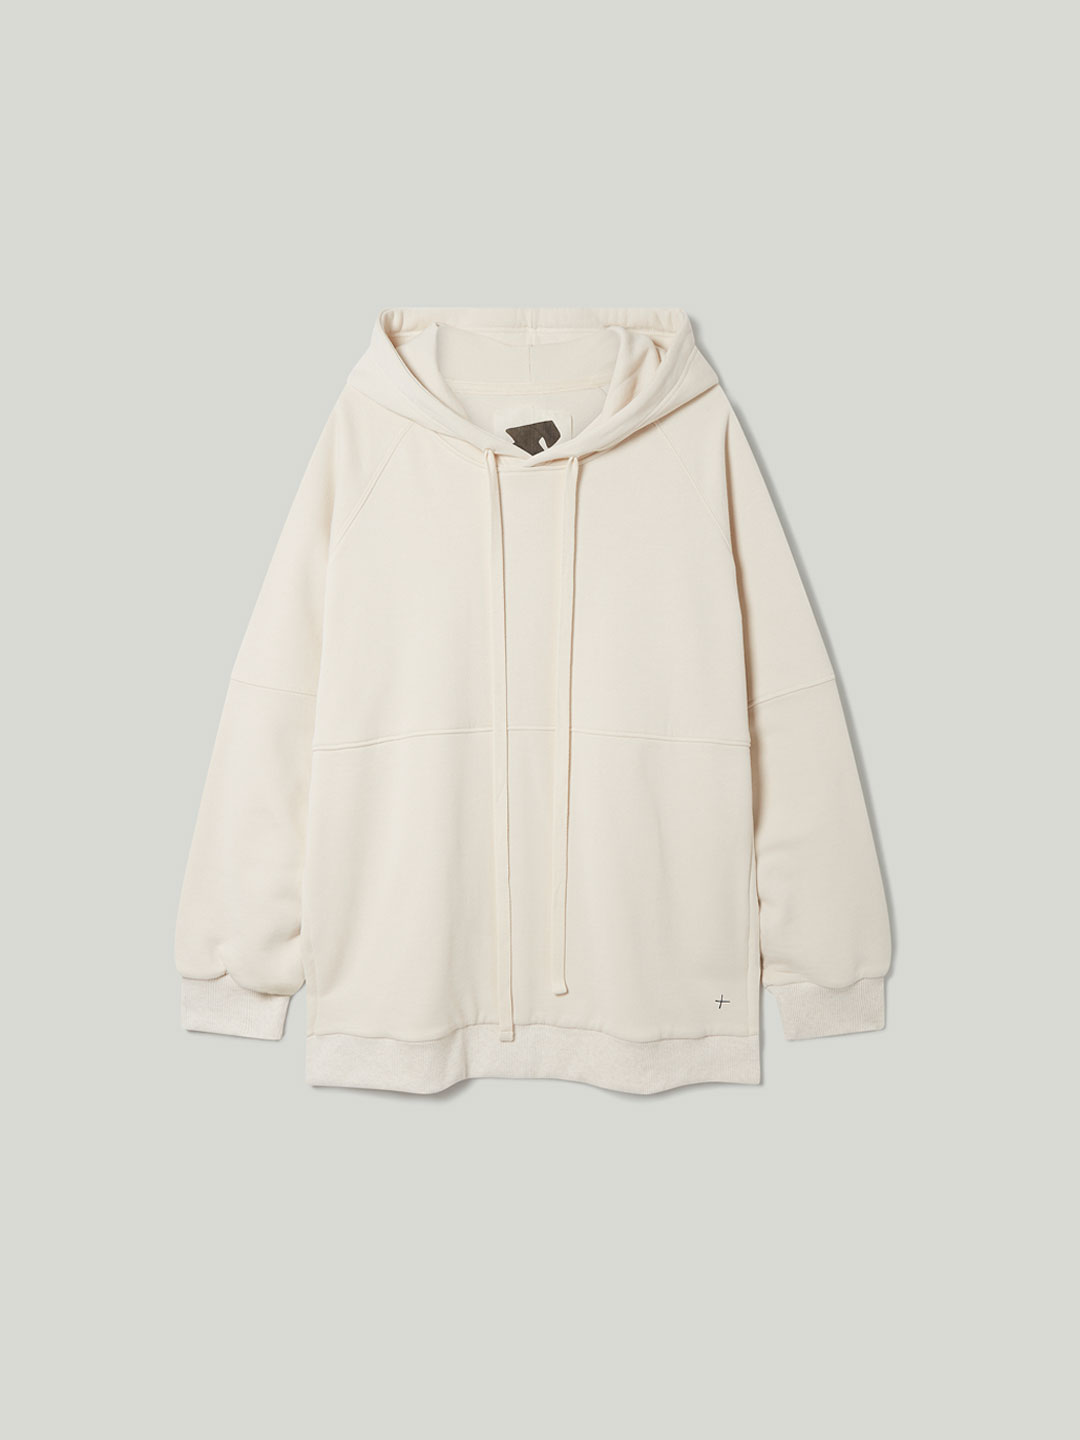 The Forager Top / Raw - Ivory